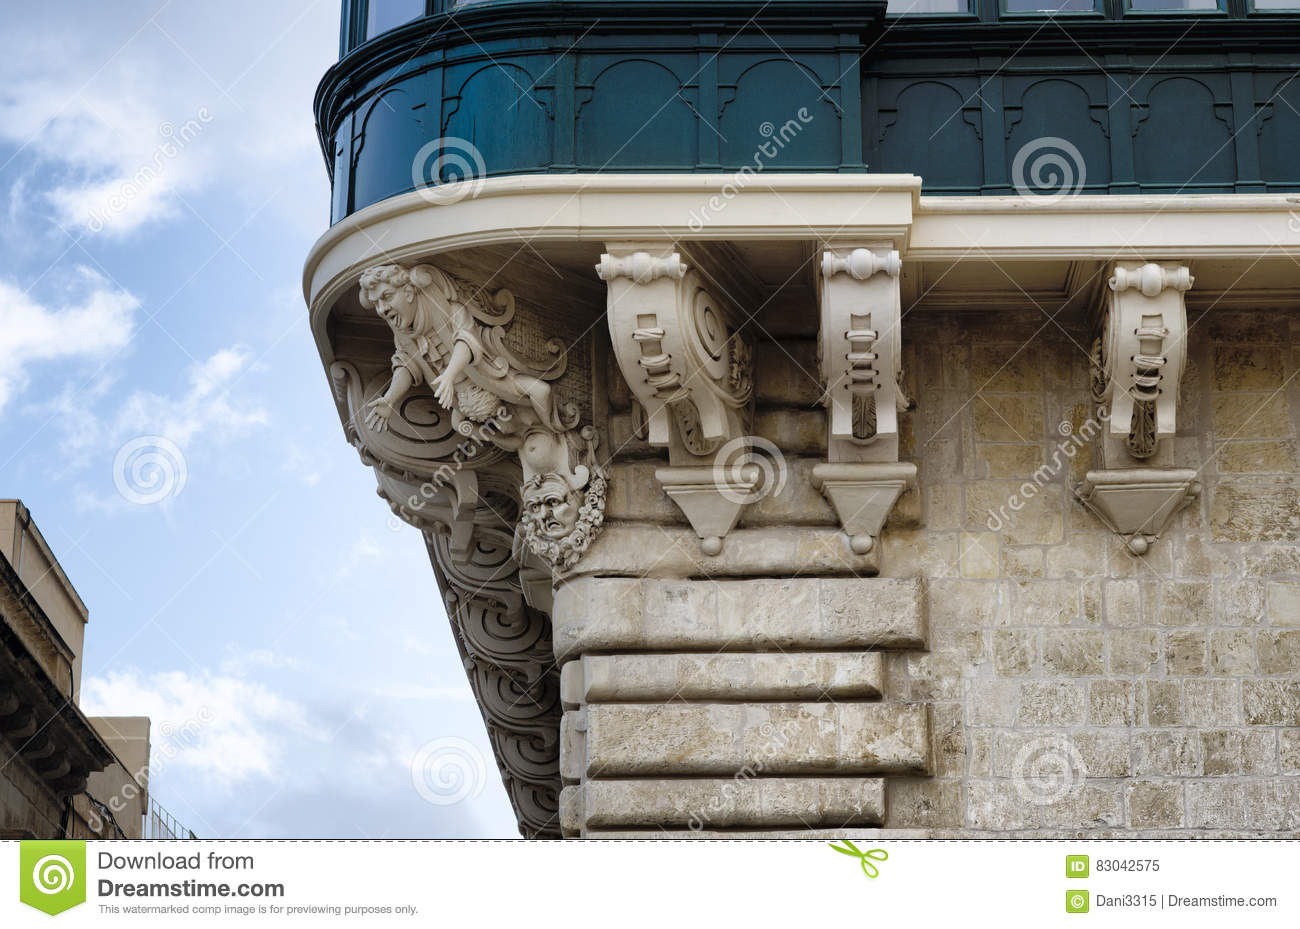 Detail of an old urban building stone facade with decorative elements